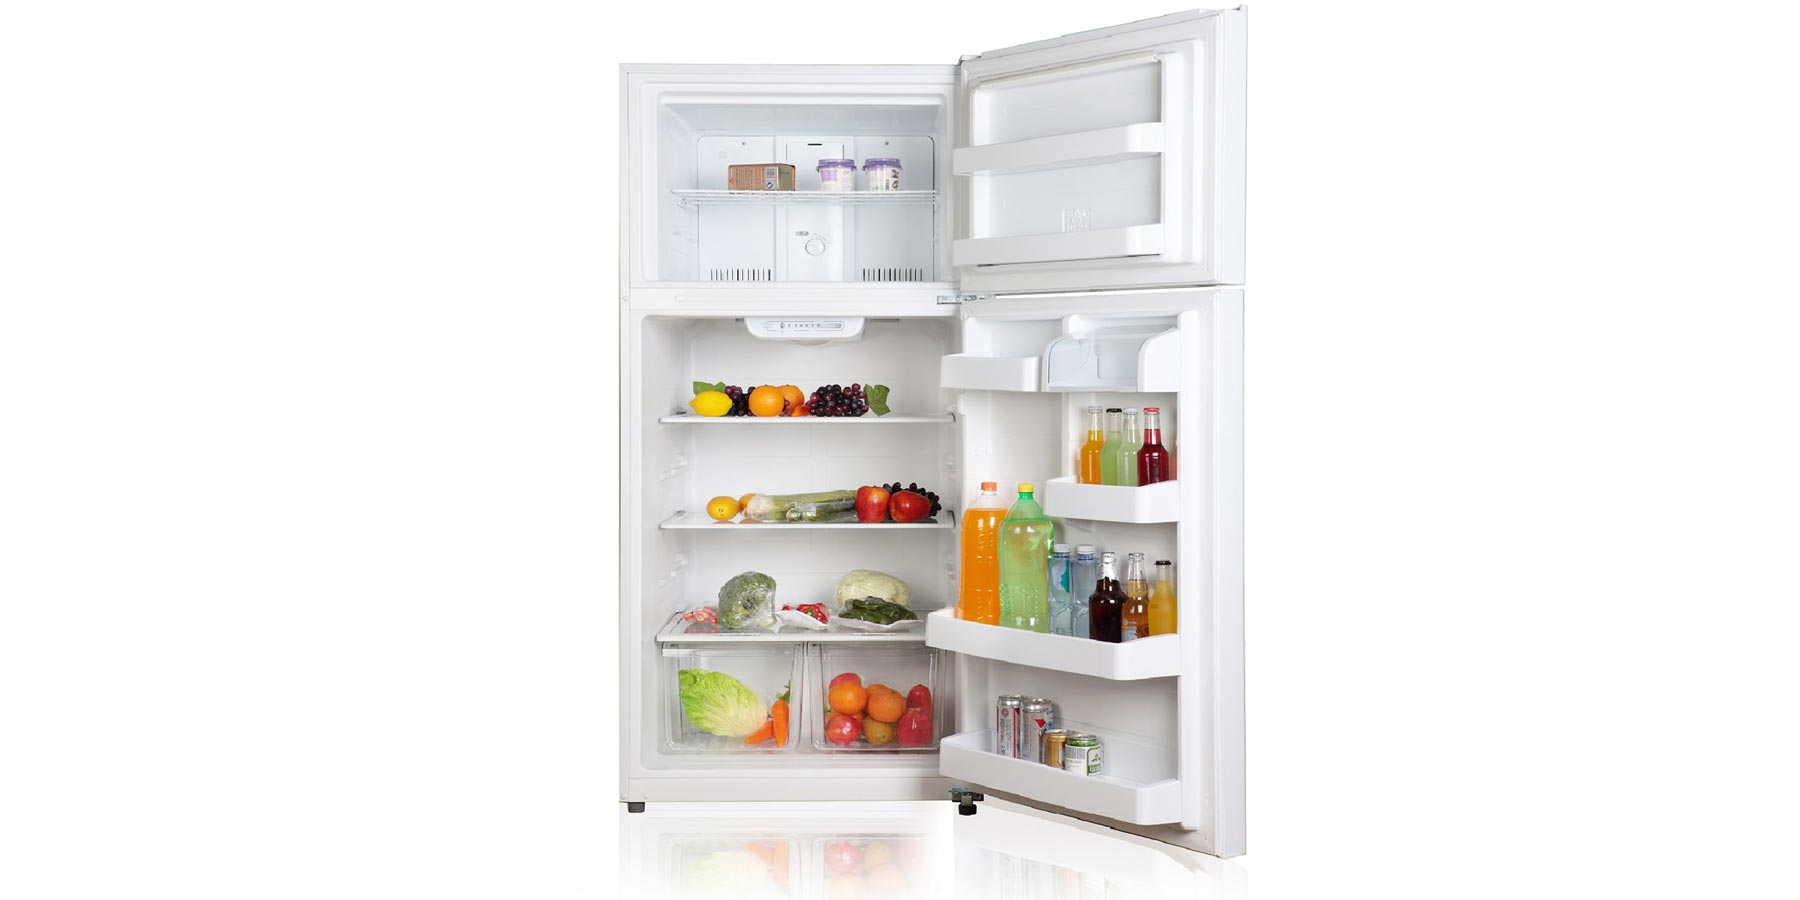 Image result for midea refrigerator model#whd-663fwew1